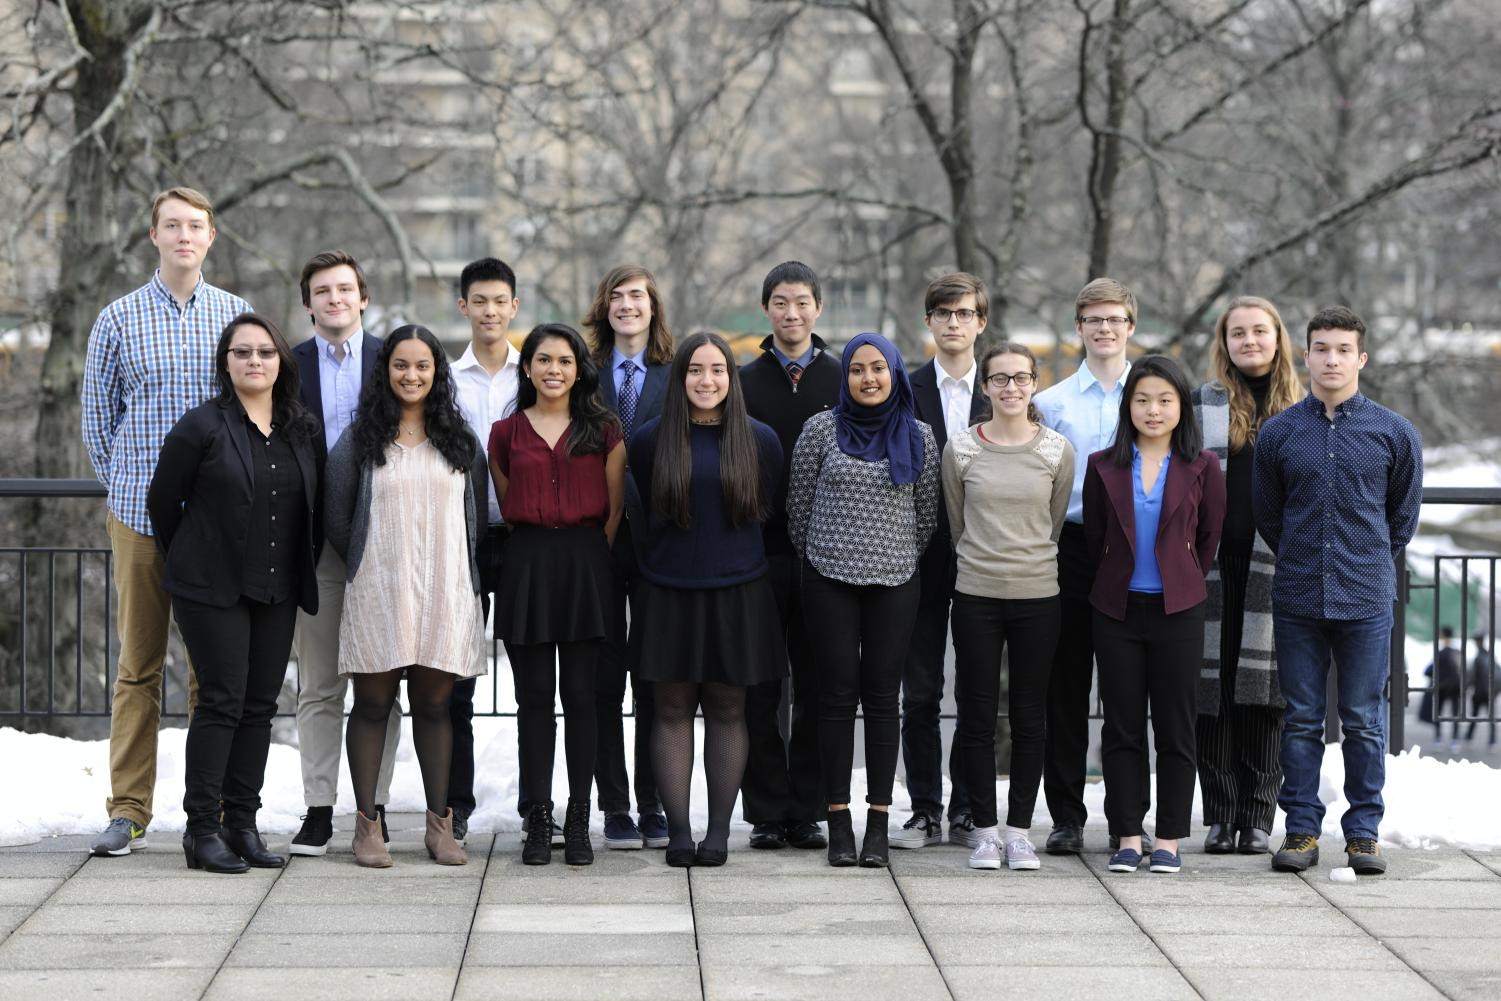 The 2018 Regeneron Science Talent Search Scholars.